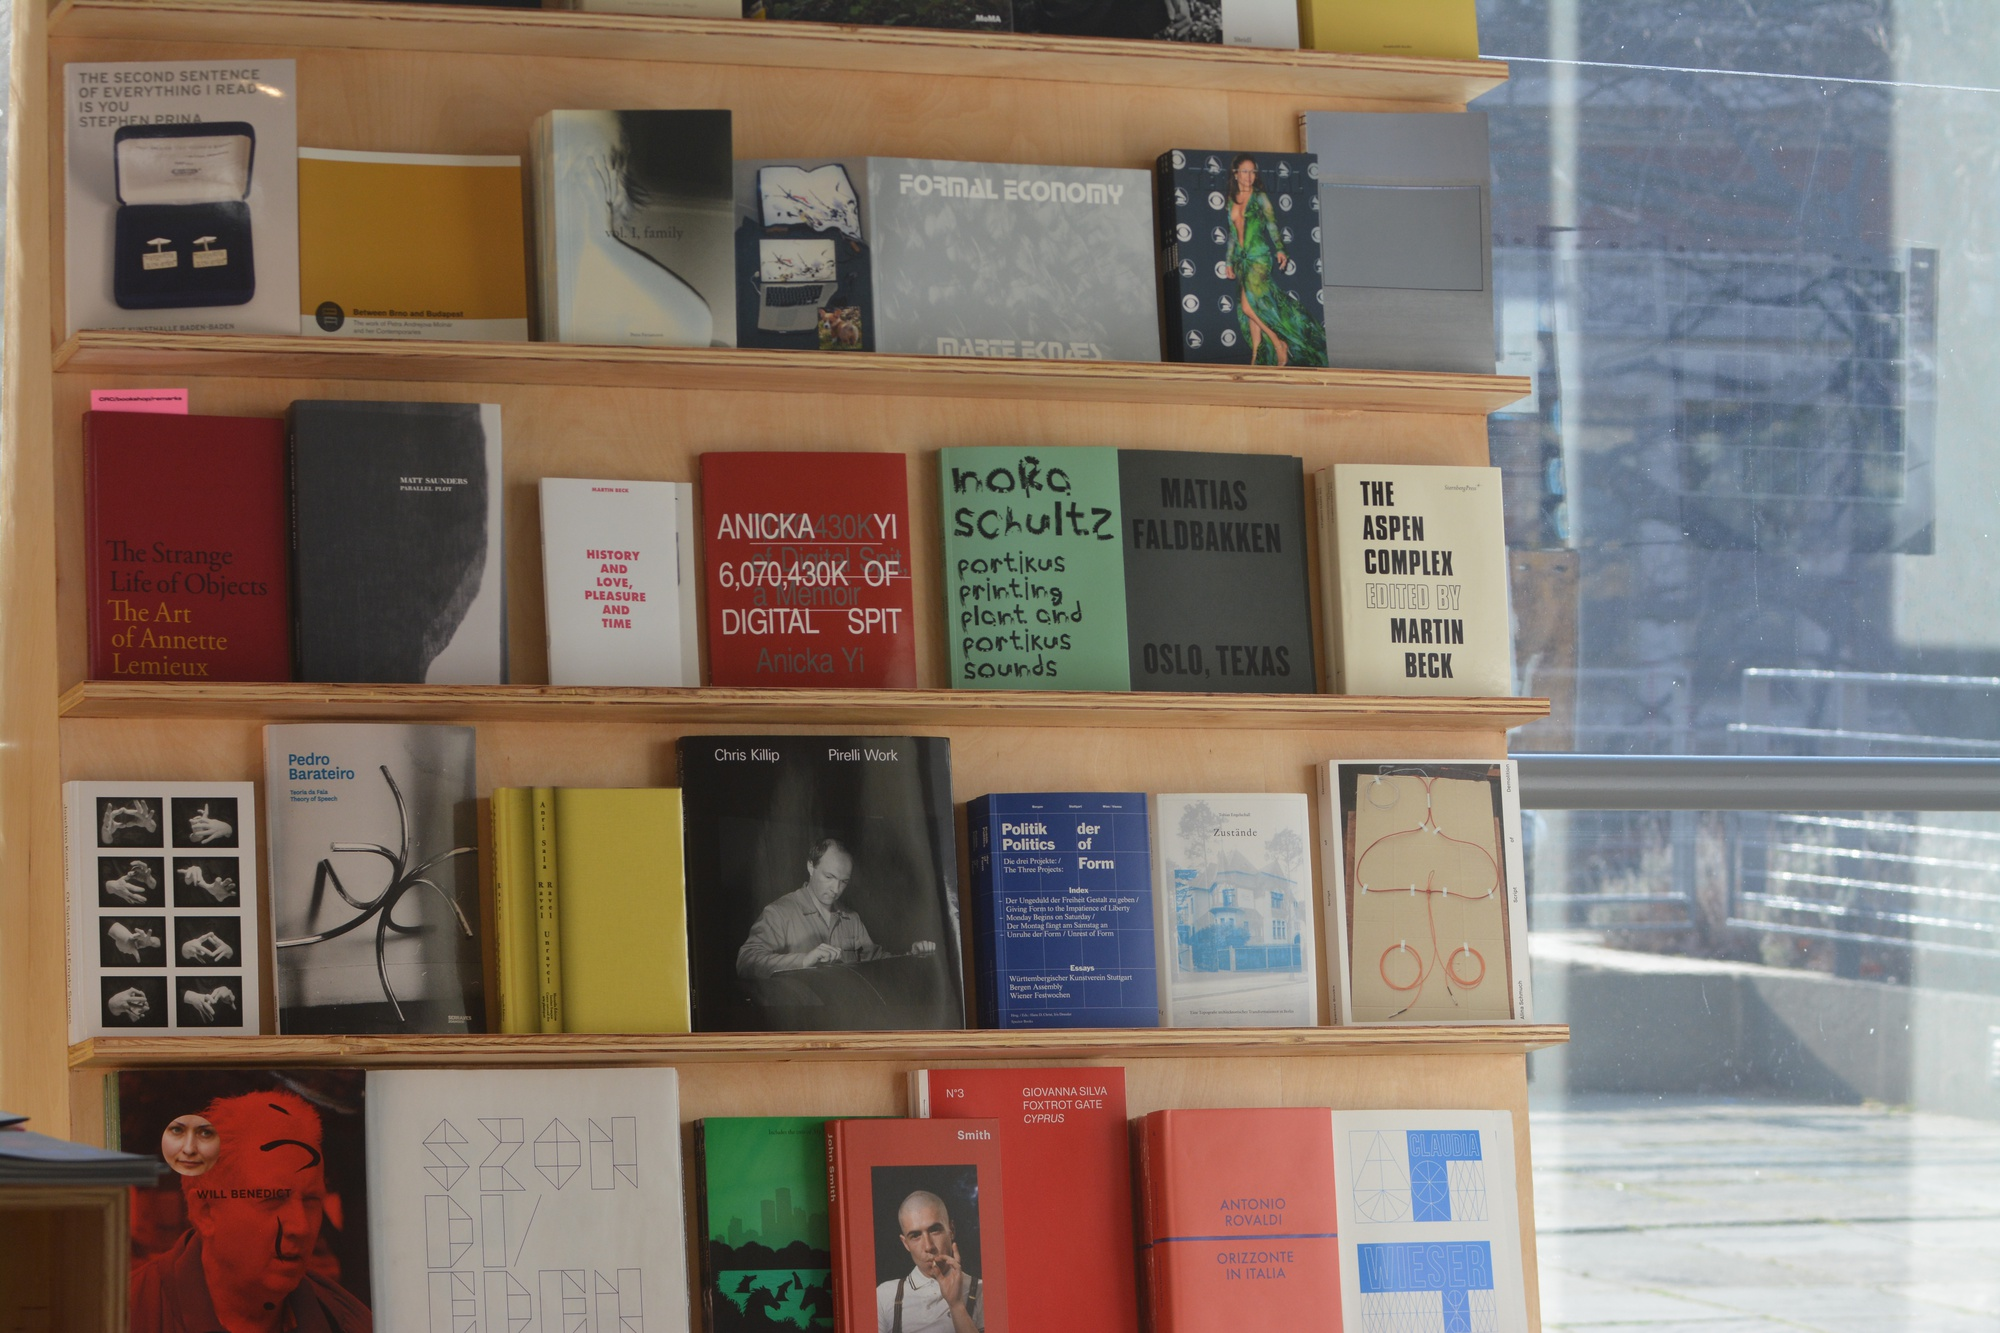 Books line up near the window of the Consumer Research Center/bookshop, an exhibit at the Carpenter Center for the Visual Arts